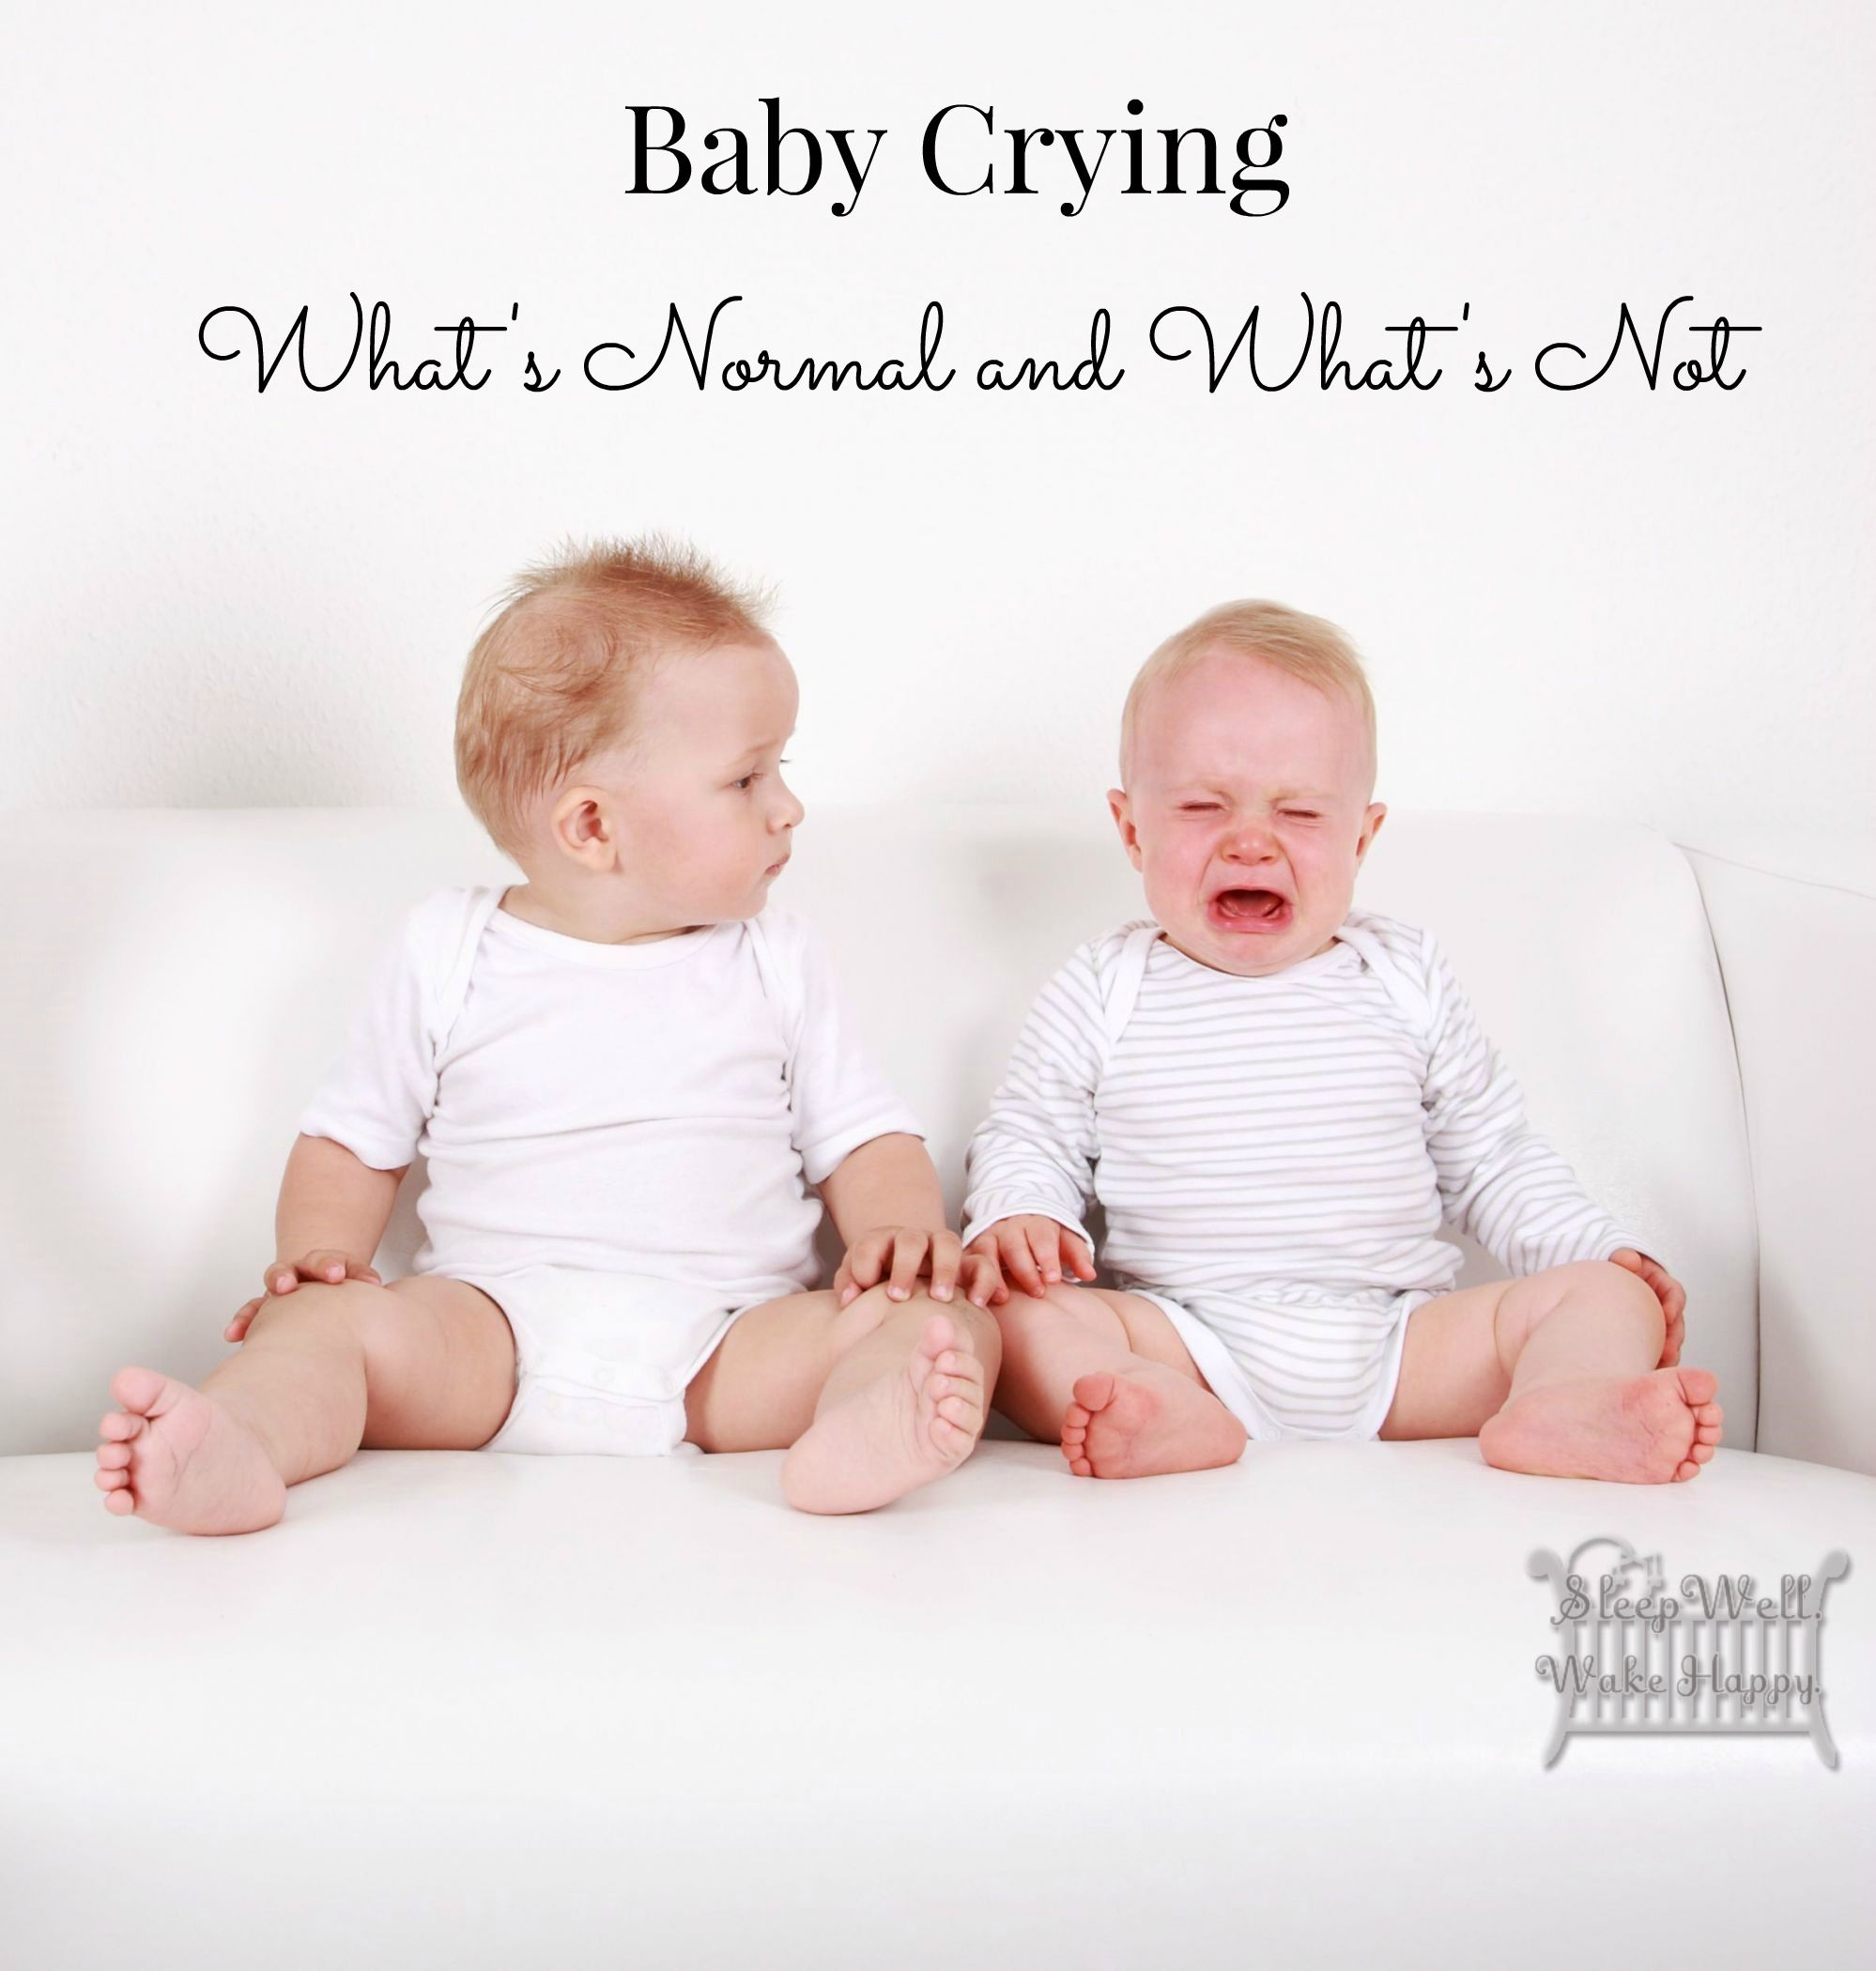 Baby Crying: What's Normal and What's Not - by Tamiko Kelly, Child Sleep Expert - Sleep Well. Wake Happy.